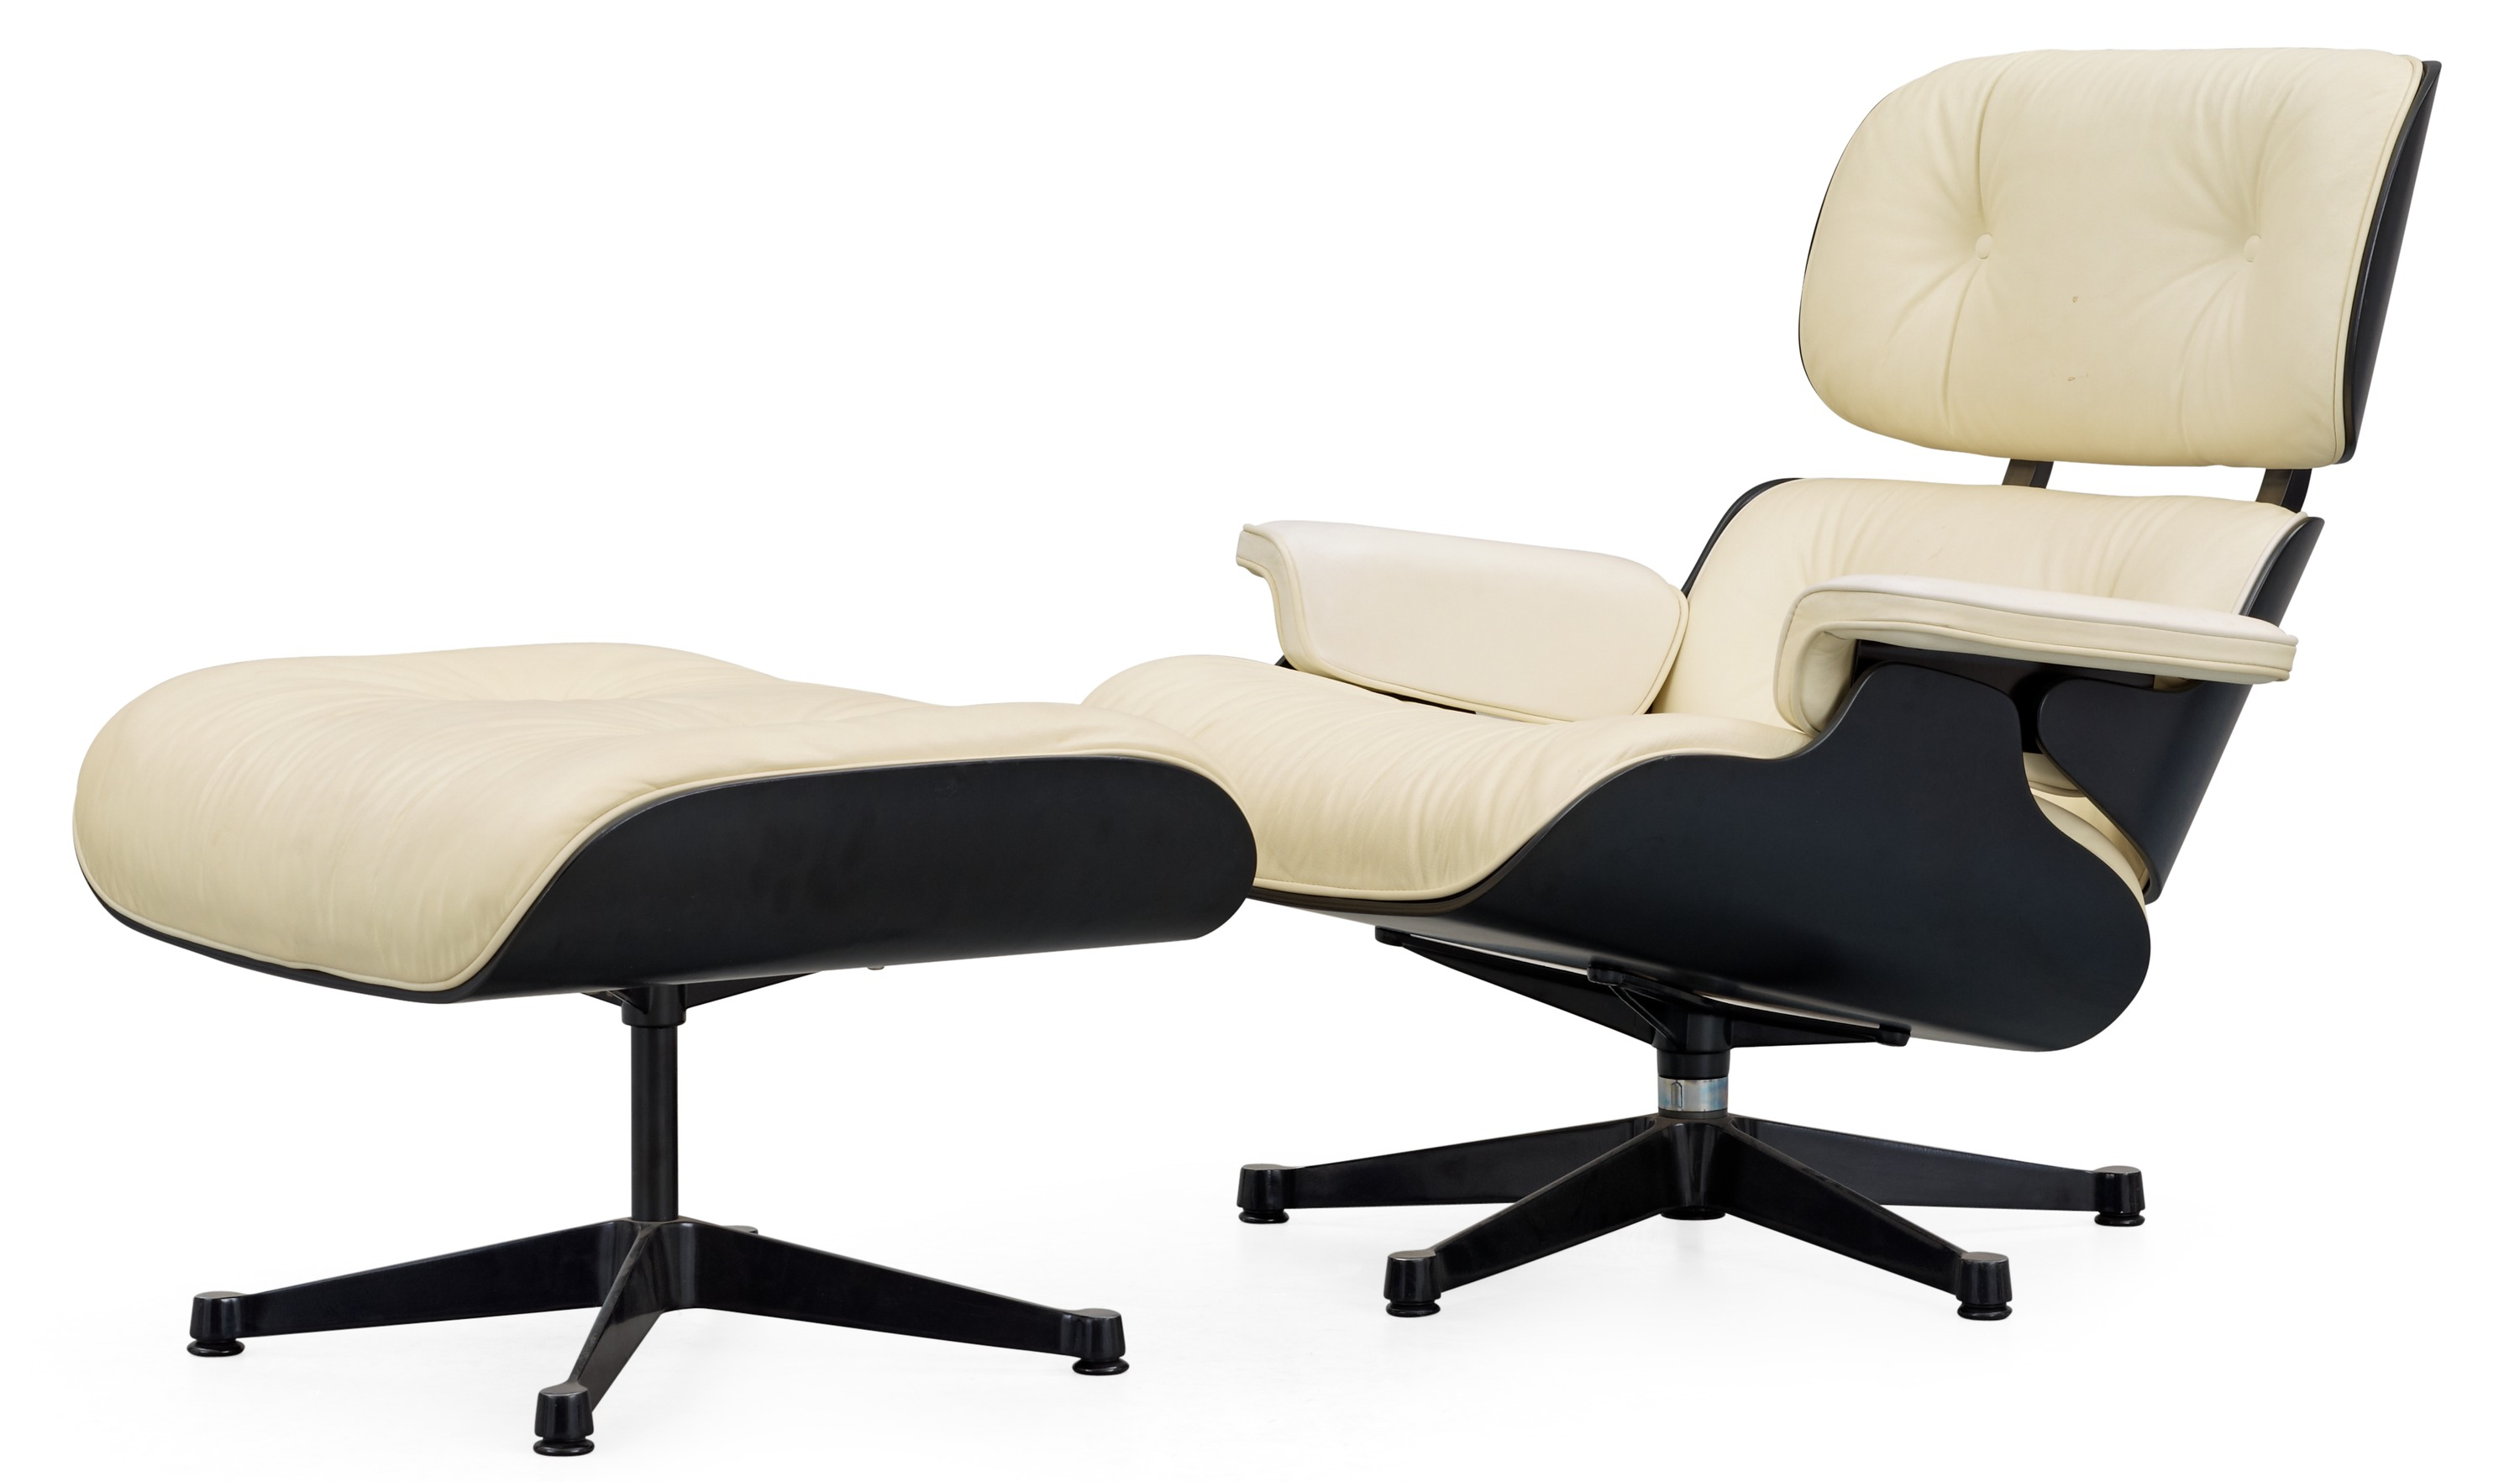 Marvelous A Charles Ray Eames White Leather Lounge Chair And Bralicious Painted Fabric Chair Ideas Braliciousco